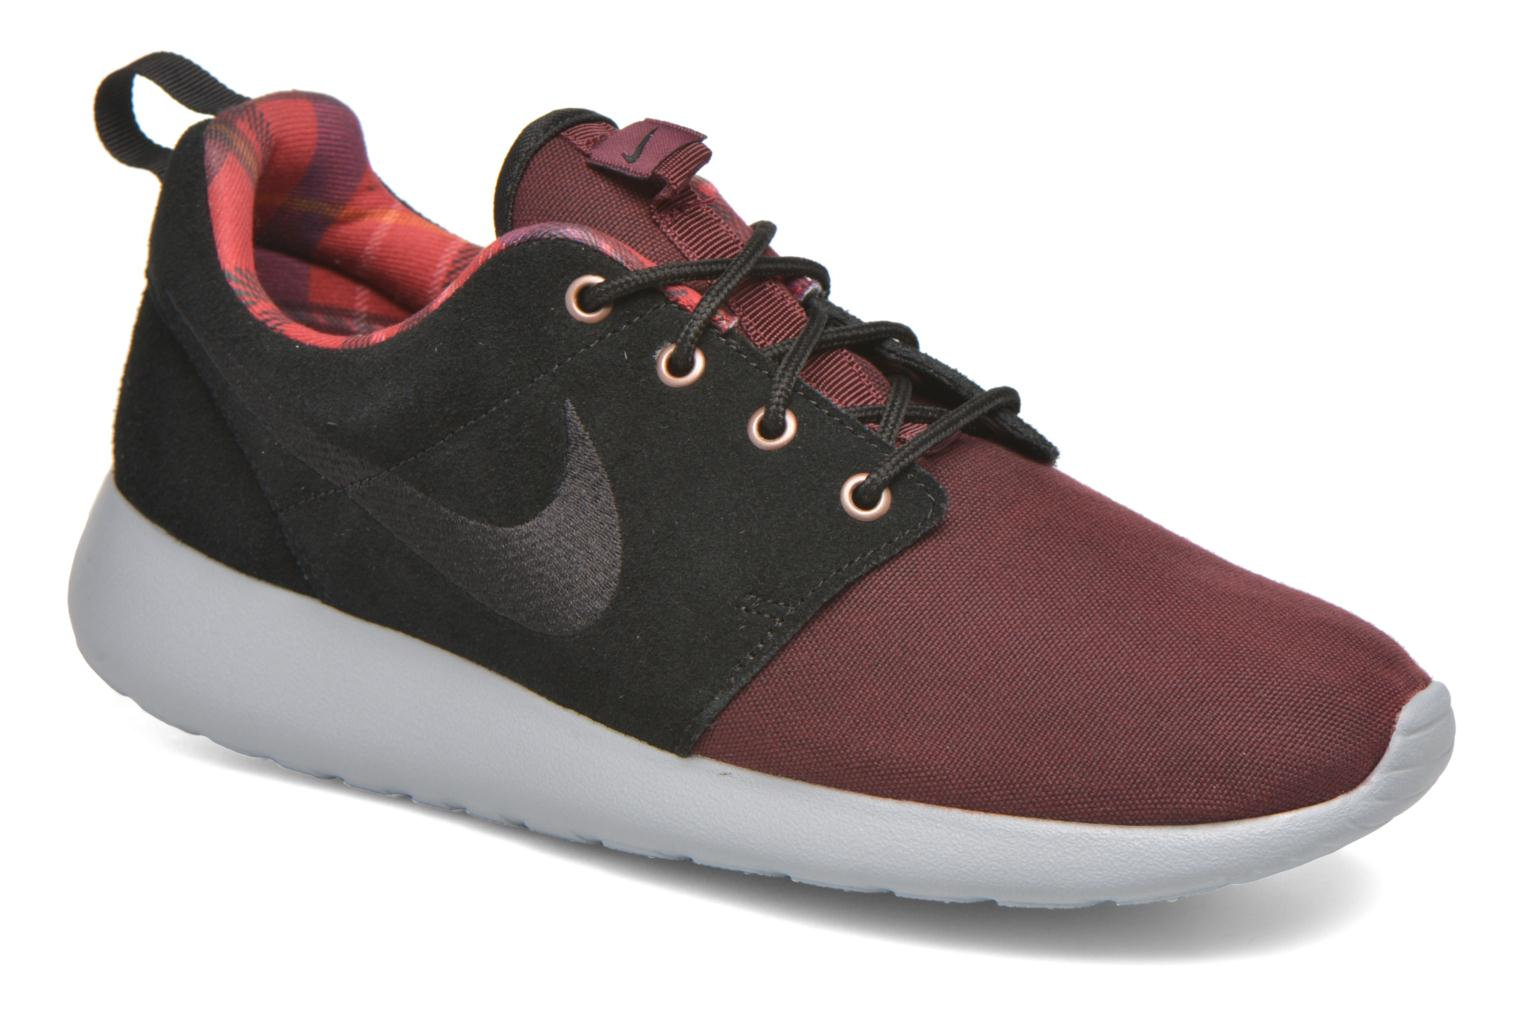 Nike Roshe One Premium Night Maroon/Black-Wolf Grey